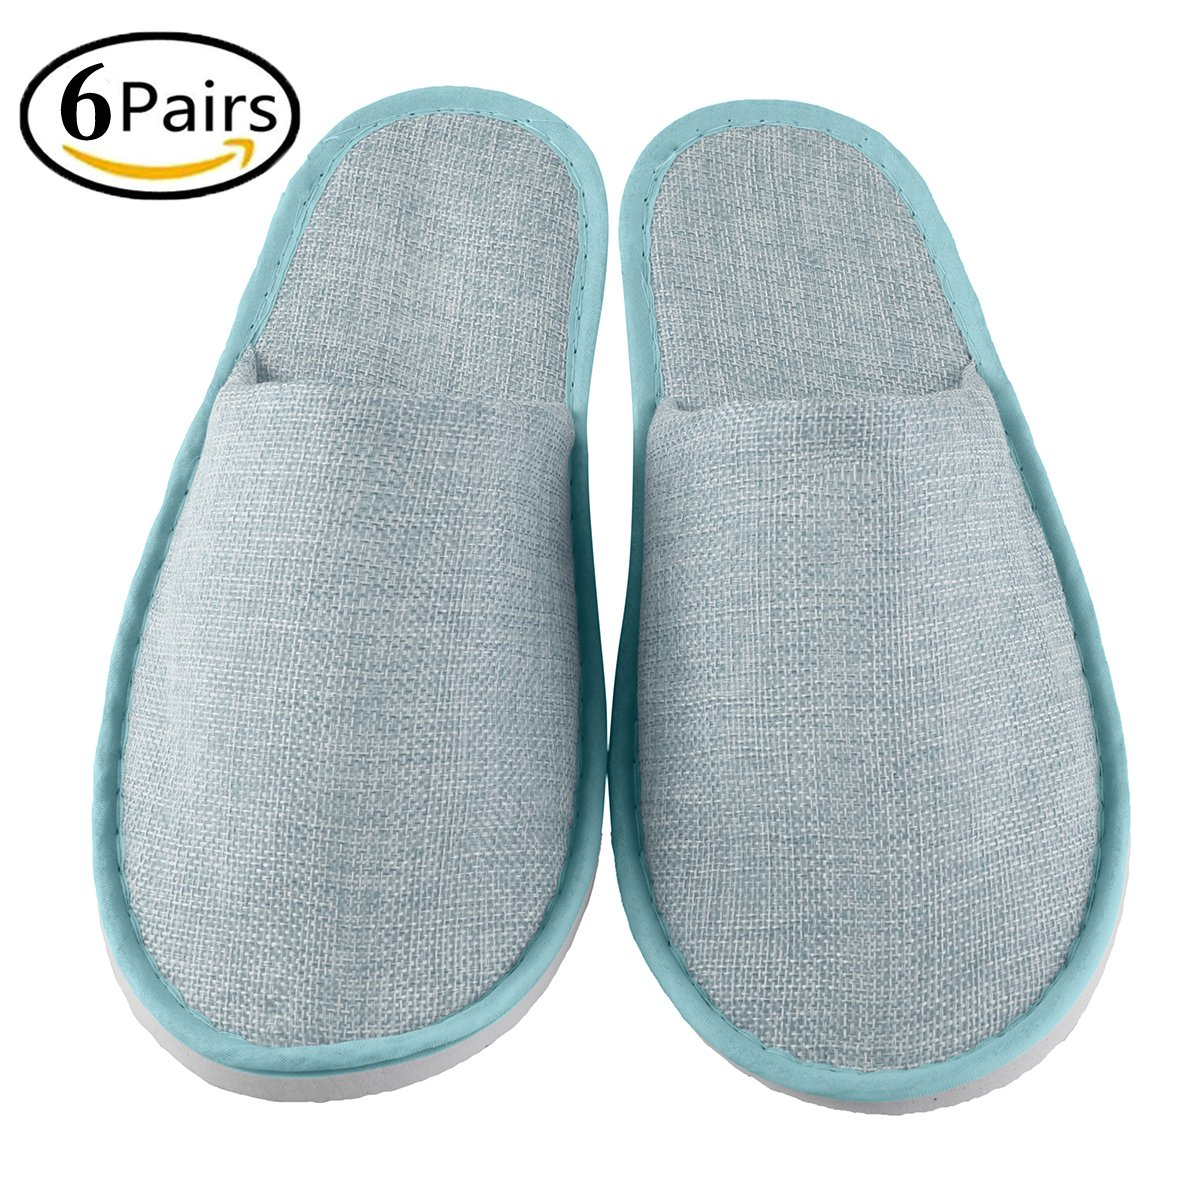 Xiaofeisi Disposable Guest Slipper Closed Toe Home Guest Slippers for Adult 6 Pairs Non-Skid Disposable Deluxe Padded Sole for Extra Comfort Lnen Blue